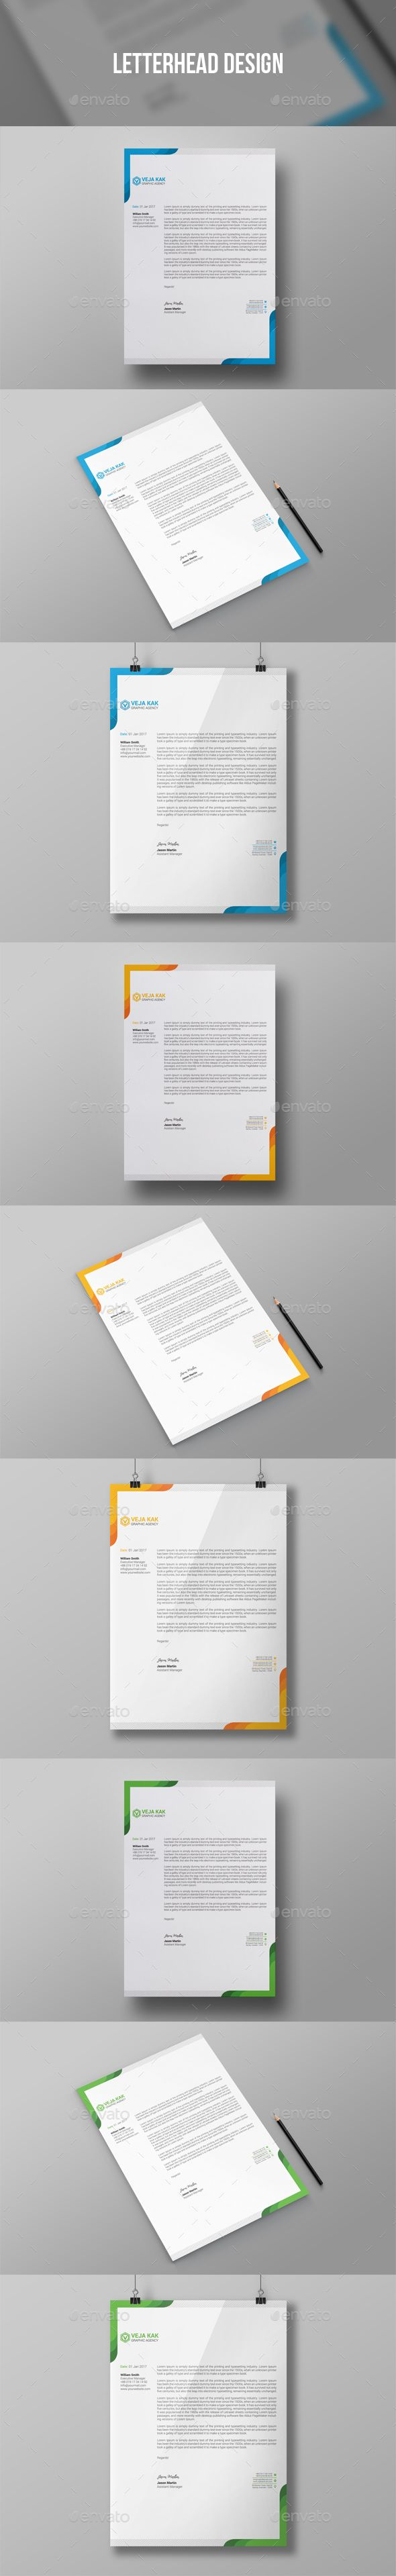 247 best Stationery Design Templates images on Pinterest | Font ...